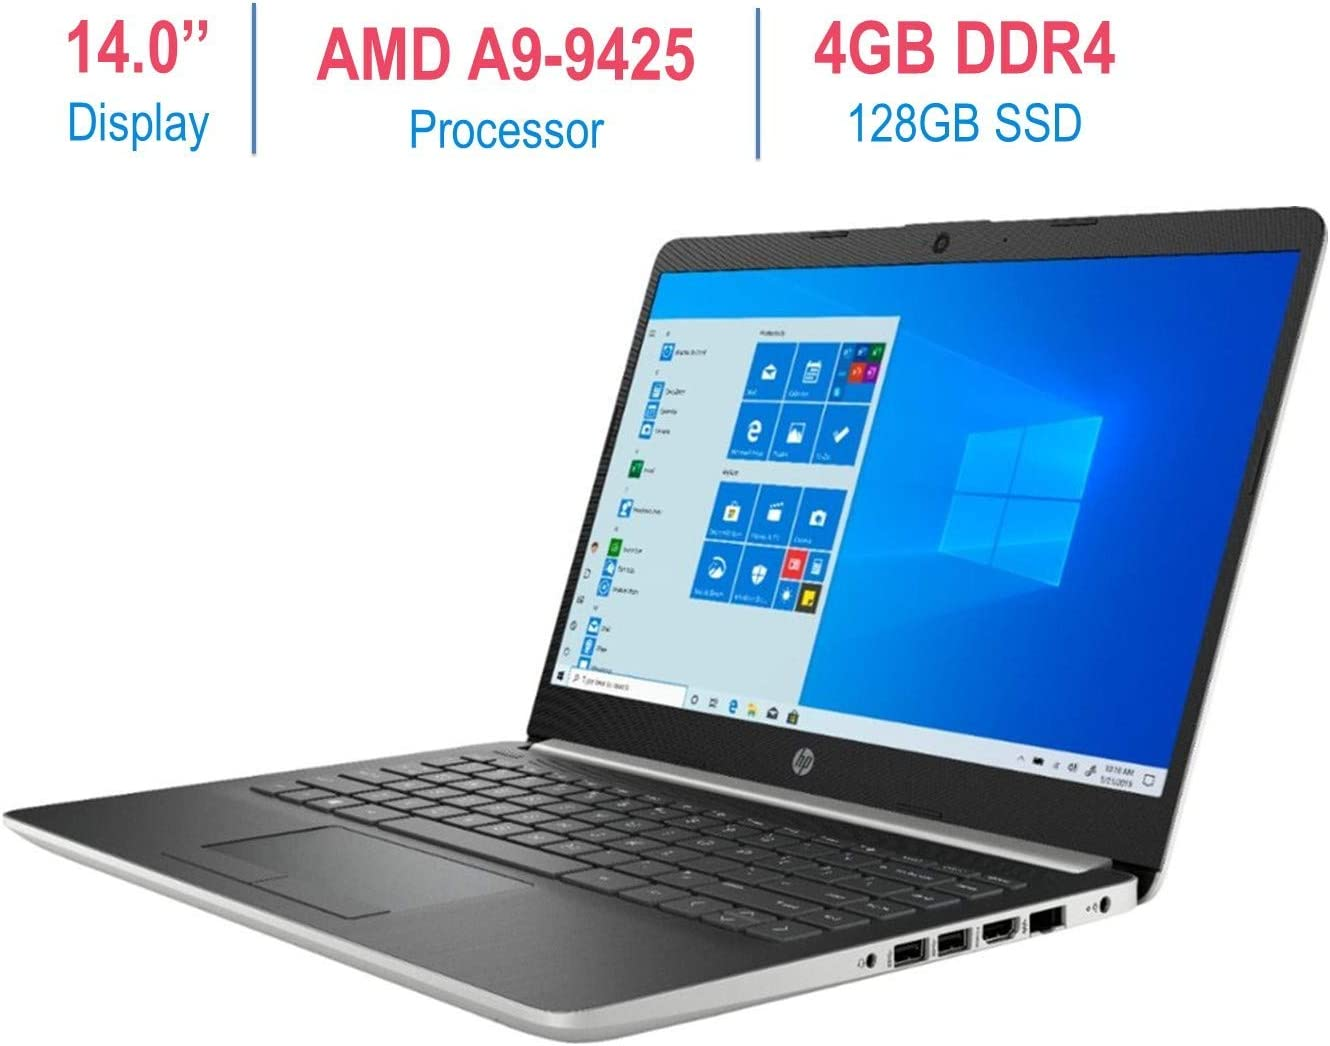 HP Premium 14-inch Micro-Edge Laptop Computer, AMD A9-9425 3.1GHz Processor, 4GB DDR4 RAM, 128GB PCI-e Solid State Drive, USB Type-C, Bluetooth,WiFi, HDMI, Webcam, Windows 10 (Renewed)